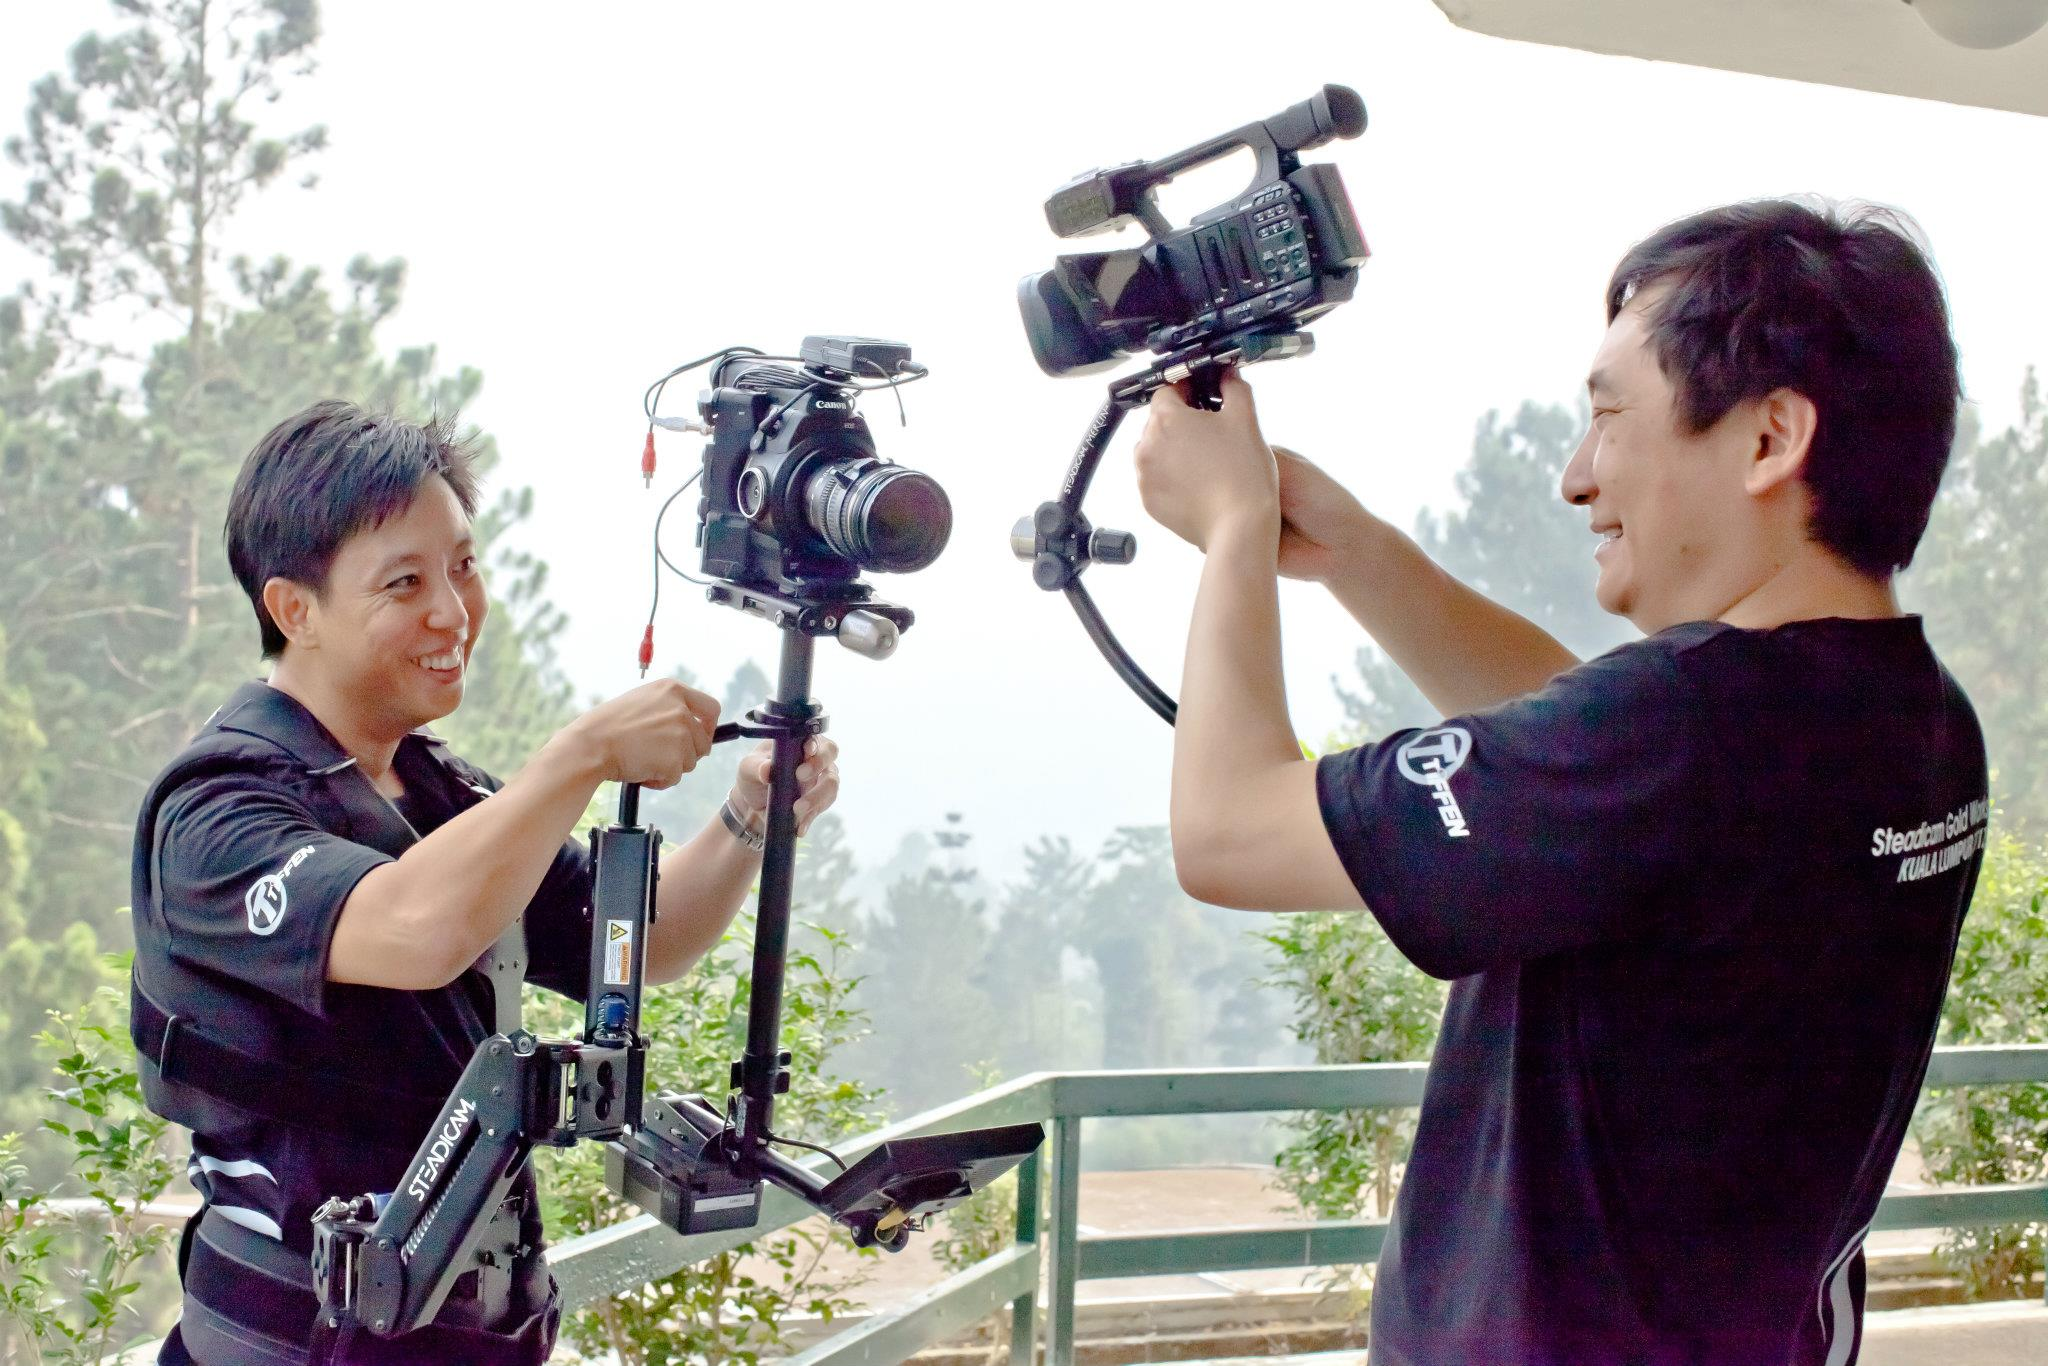 Let's see who booms highest. I'm using the lightweight Pilot carrying the Canon C300 while Dan (dslrnewsshooter.com) is flying the Merlin with an XF100. Picture by Herman Chiew.